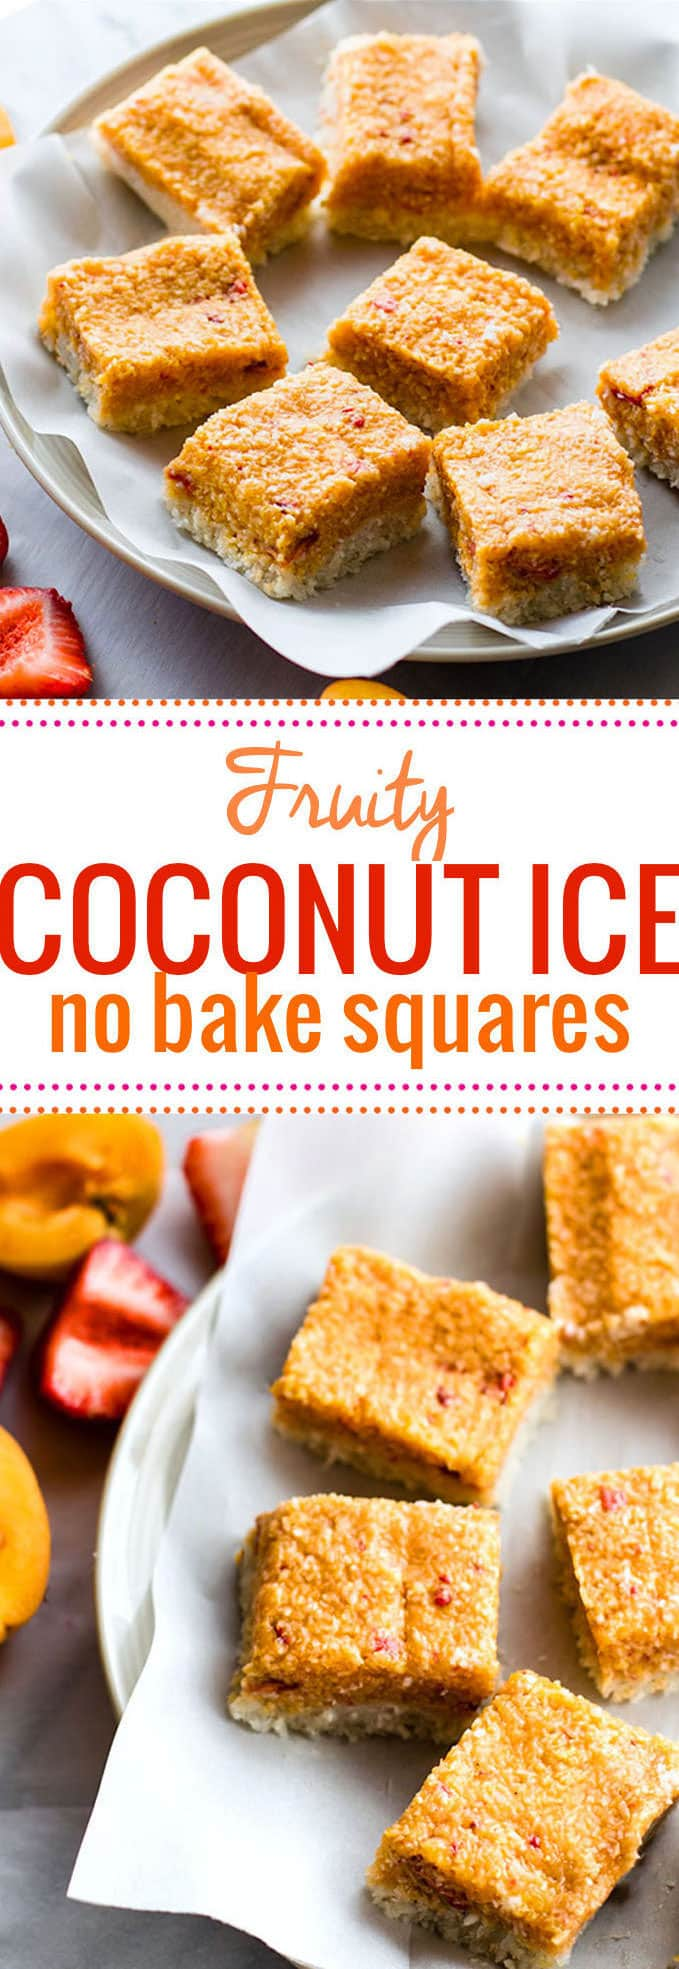 No Bake Fruity Vegan coconut ice squares! This gluten free healthier coconut ice recipe is easy to make, doesn't need cooking, and is quick to put together. Tasty too! @cottercrunch